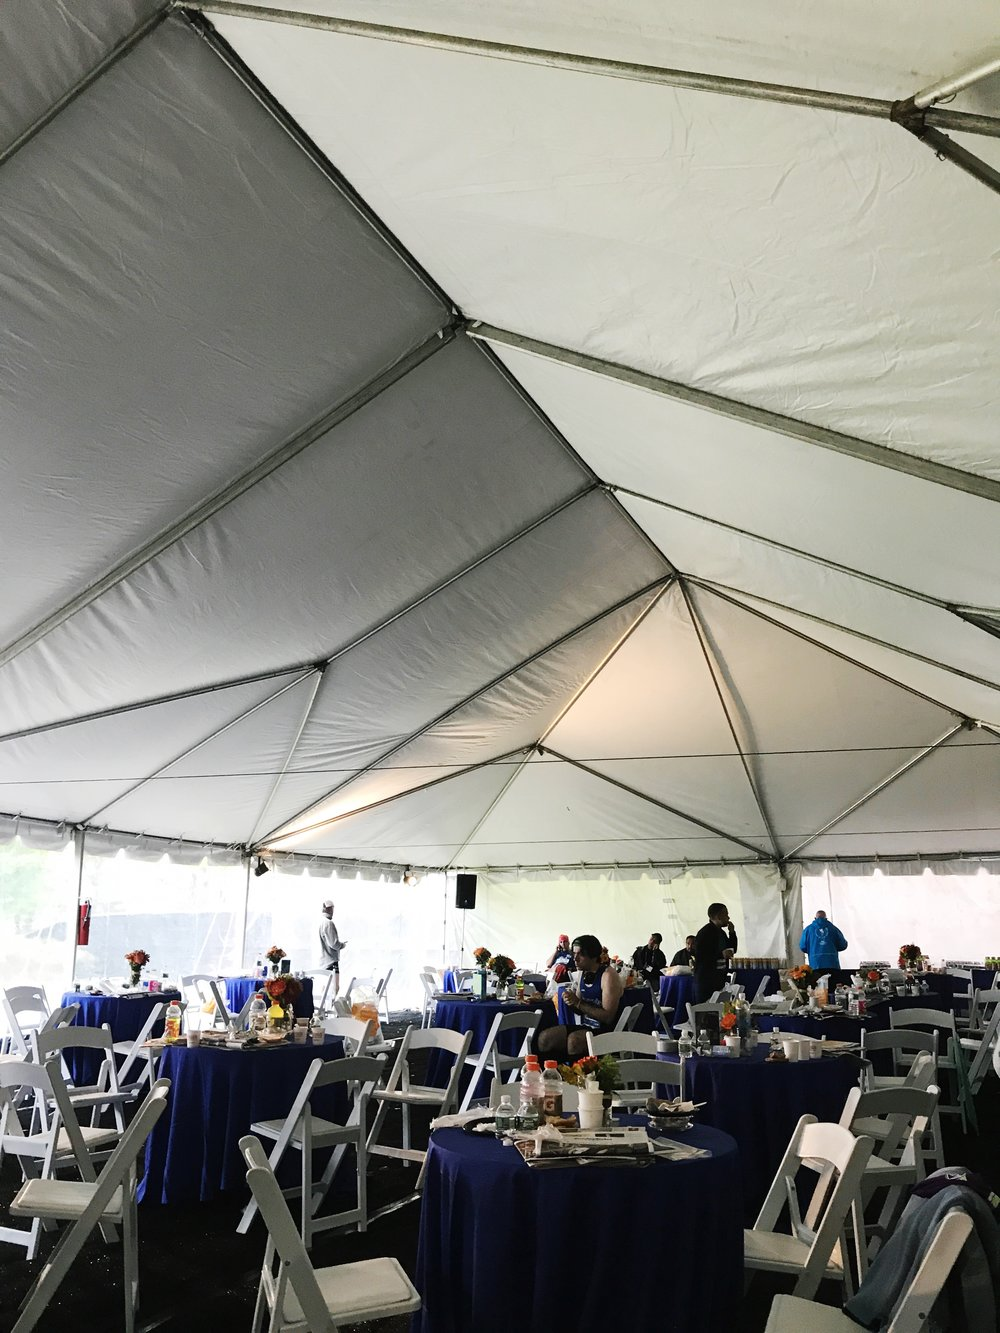 United Airlines tent - we were so grateful for the chance to keep warm and hydrated thanks to United Airlines